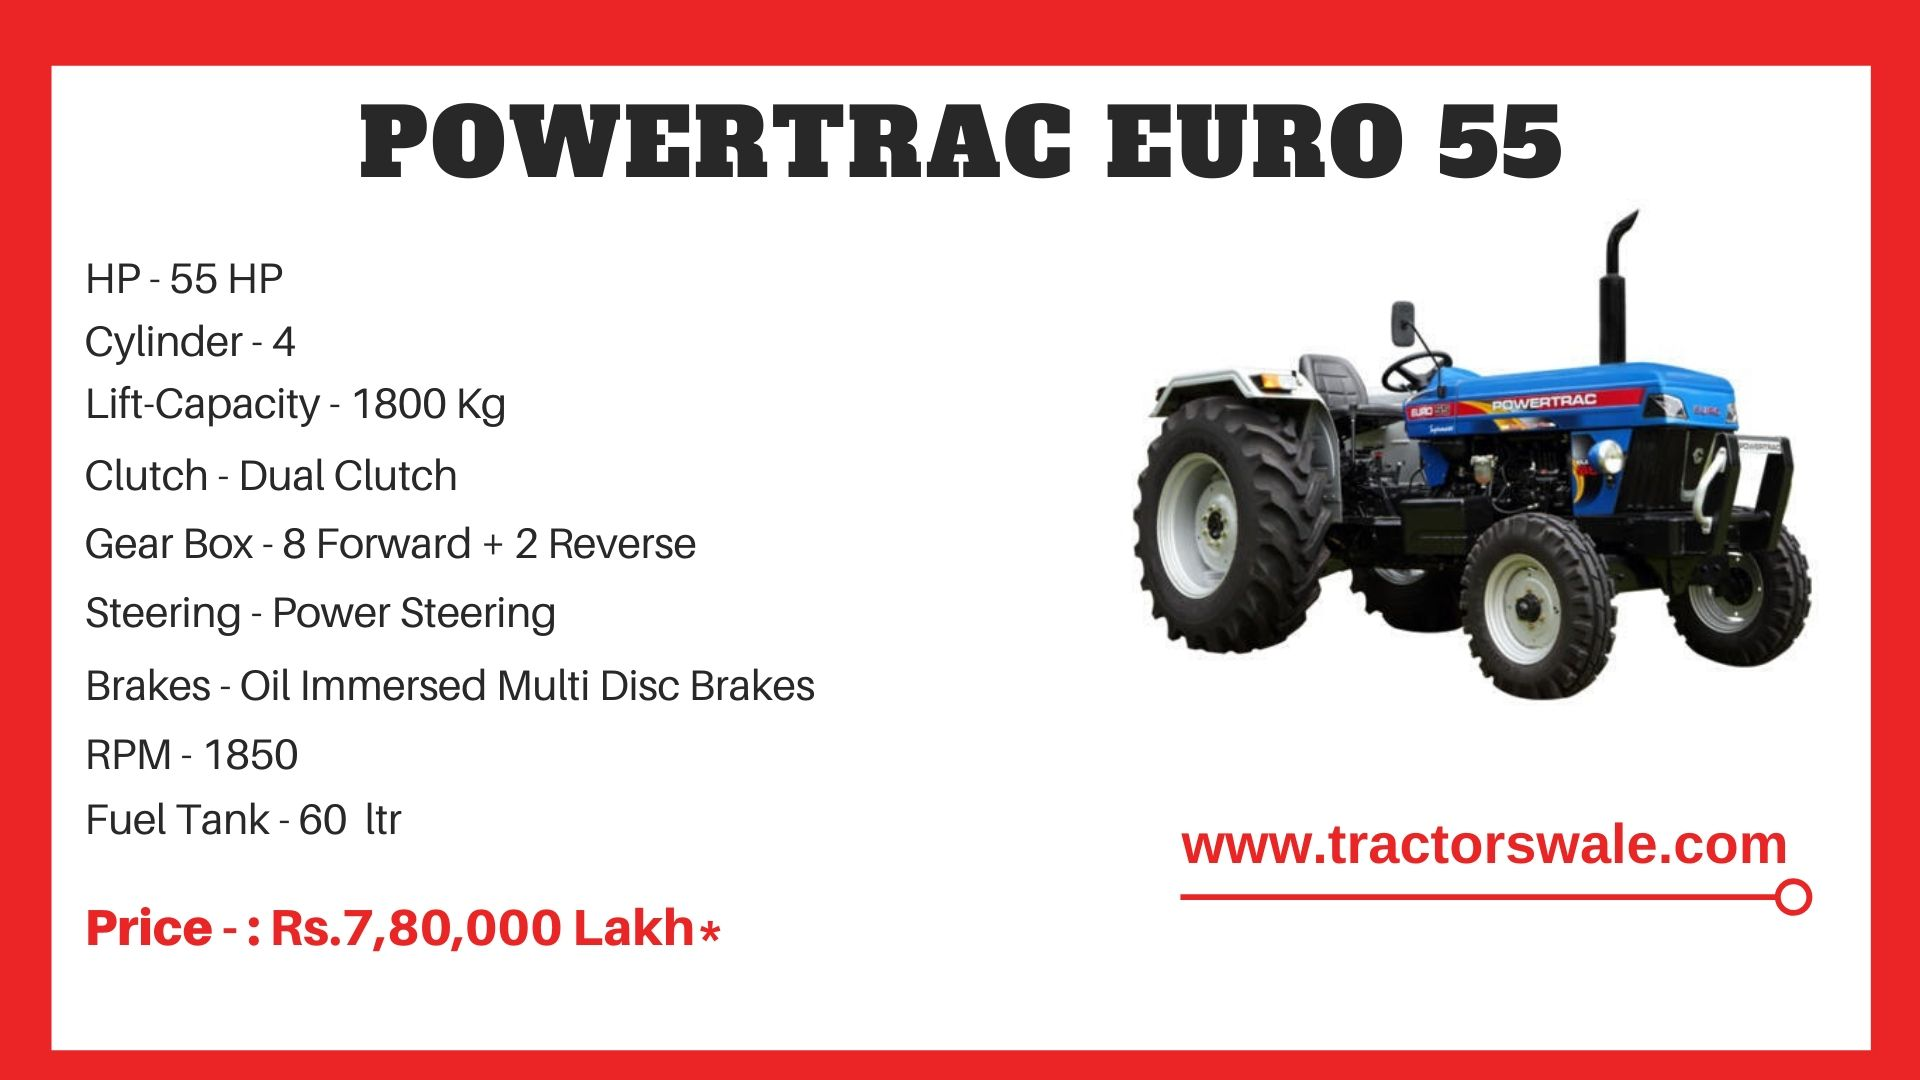 PowerTrac Euro 55 Tractor Price